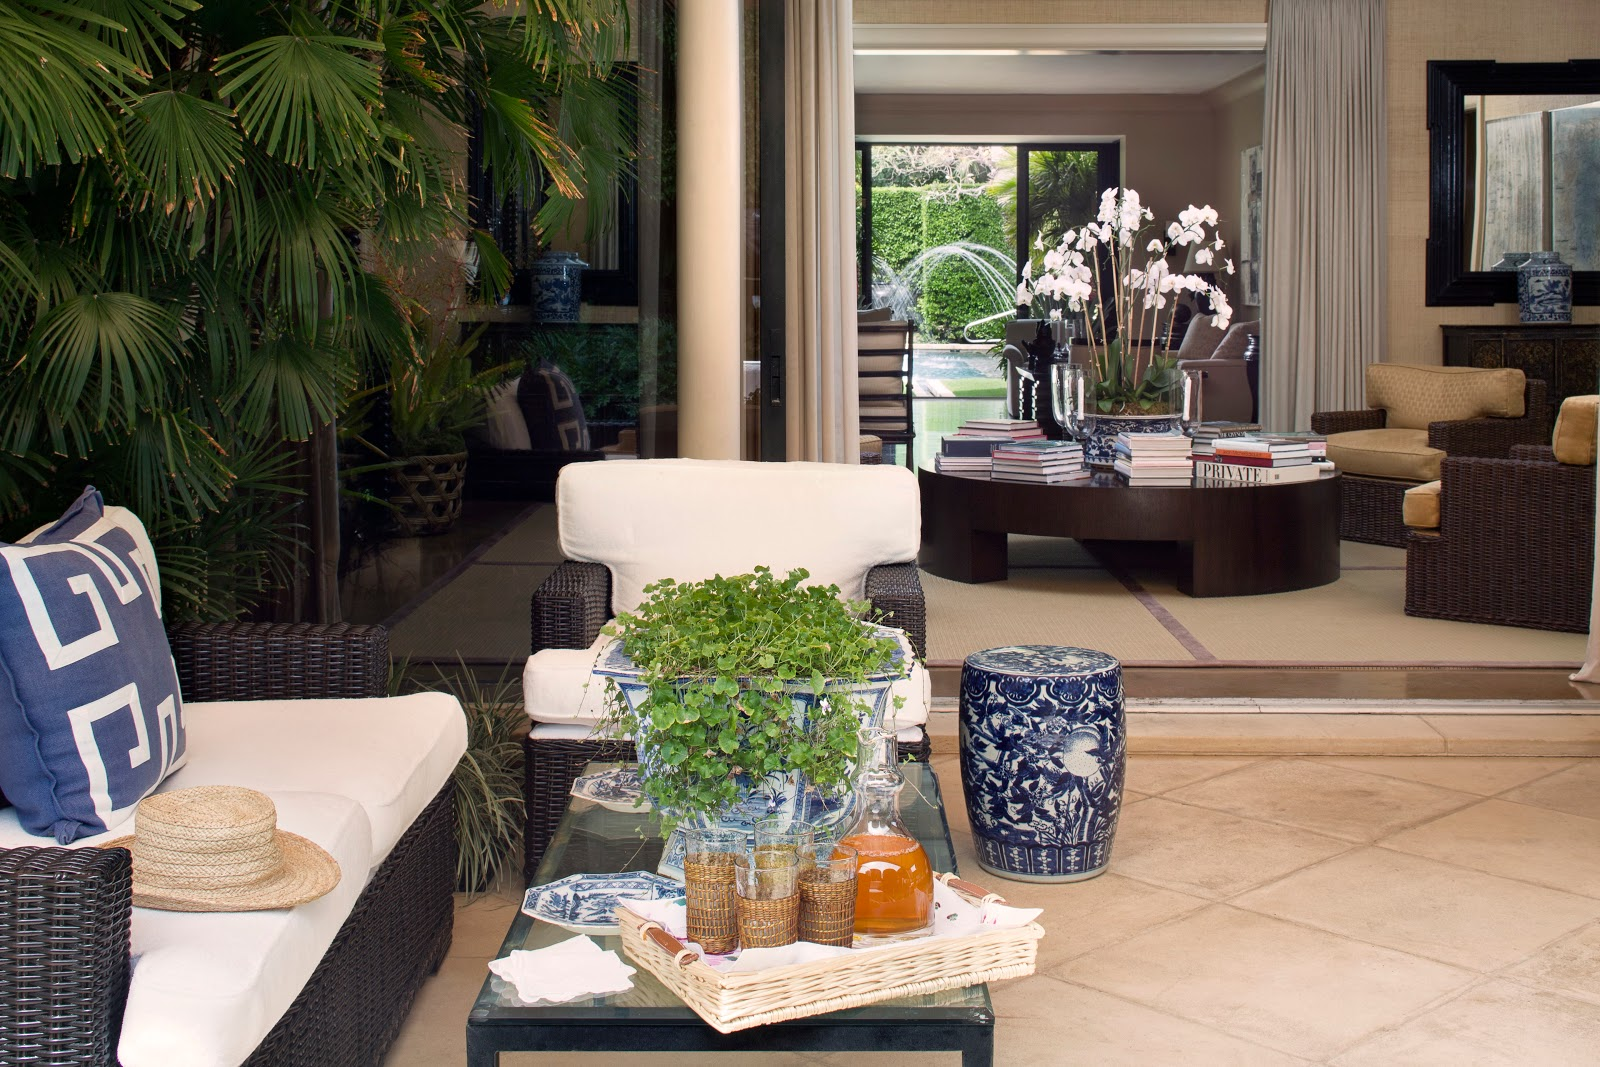 nest by tamara book review palm beach chic perfectly captures